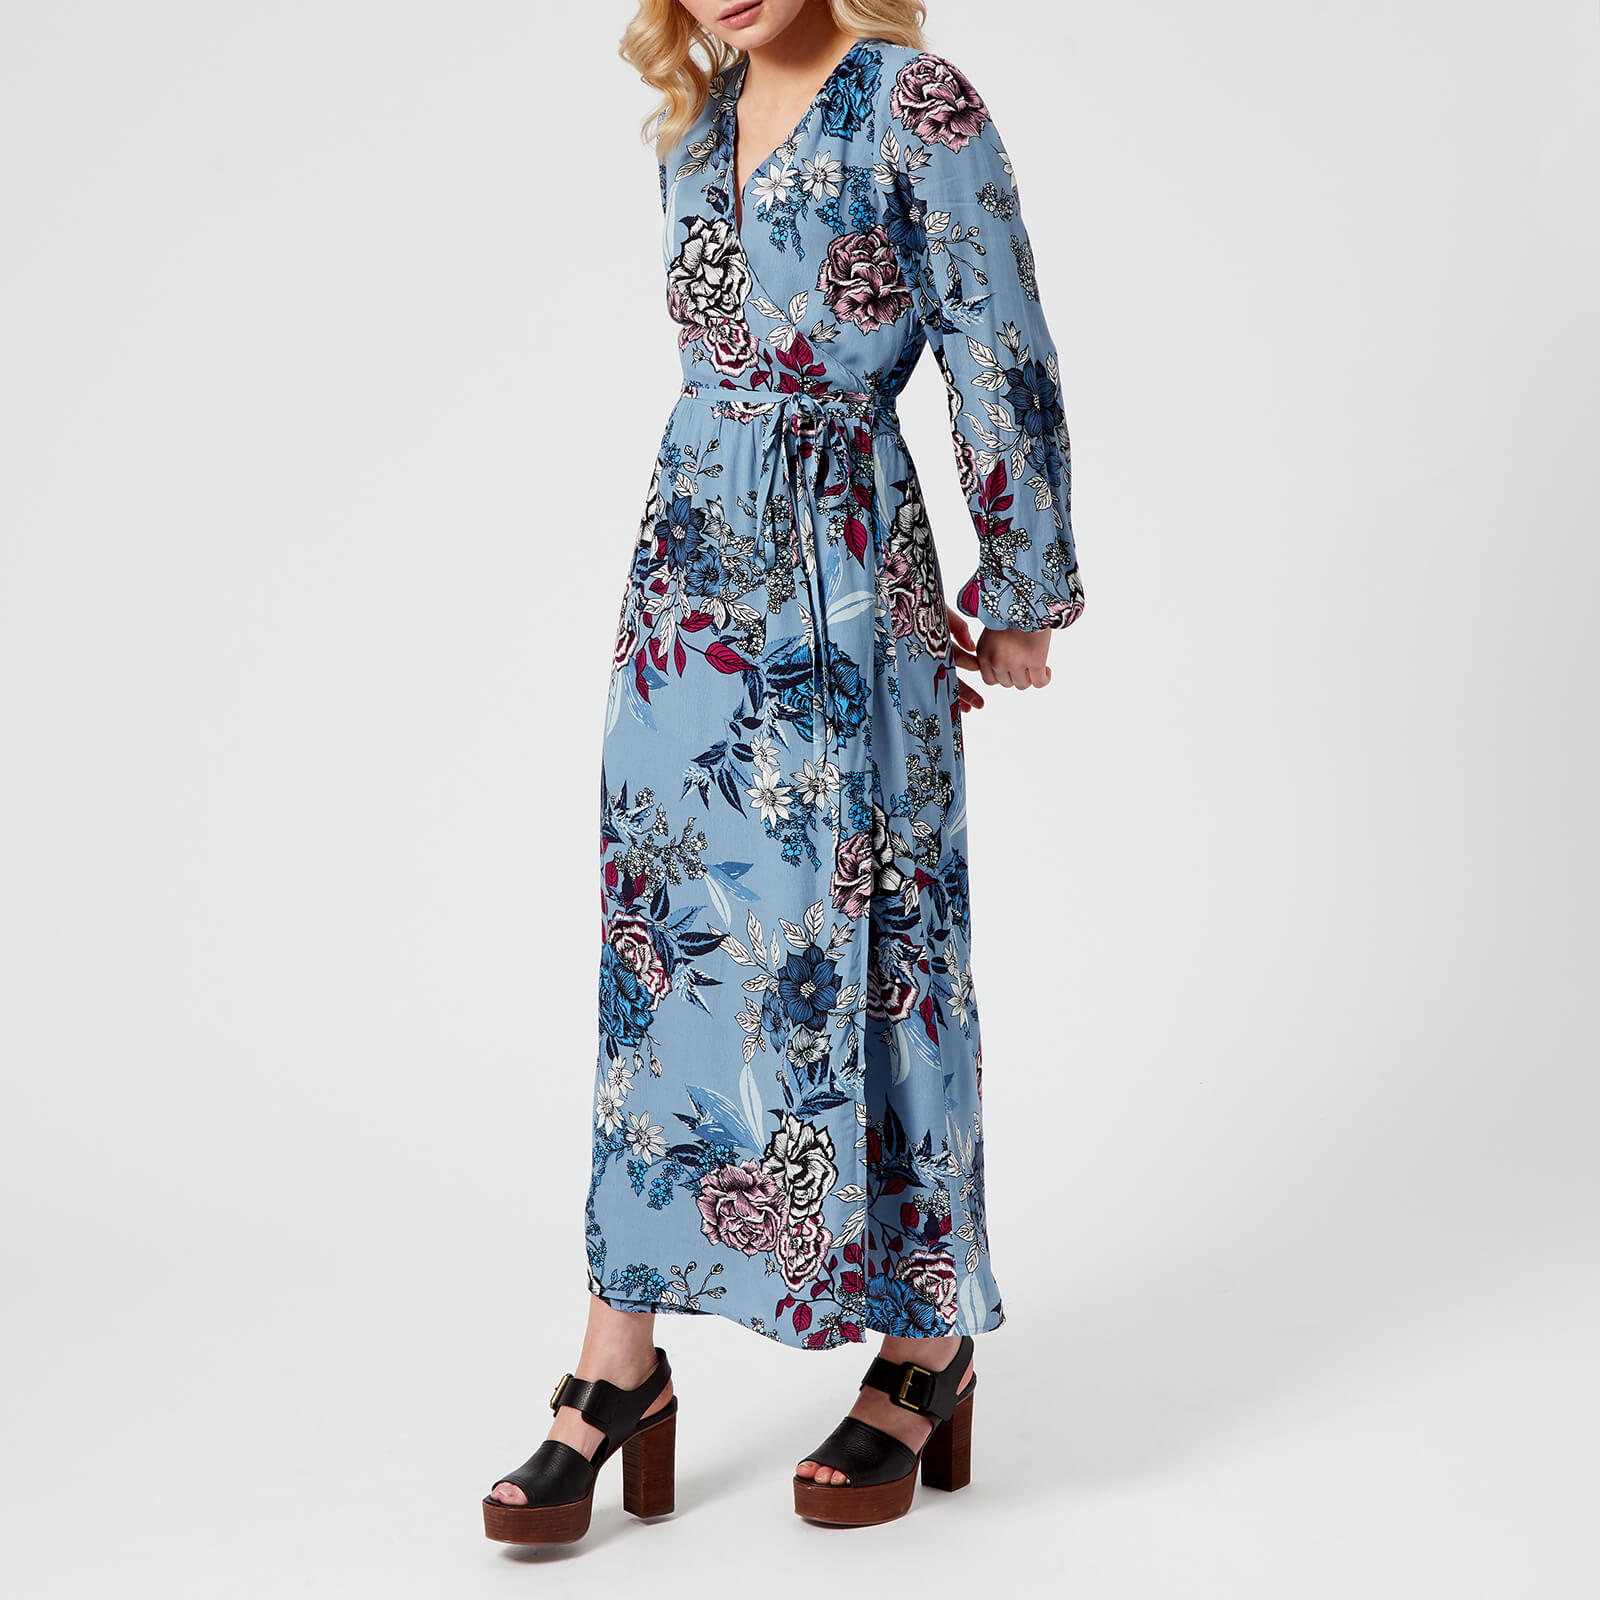 437108ae39c3 Gestuz Women's Begonia Wrap Dress - Light Blue Flower - Free UK Delivery  over £50